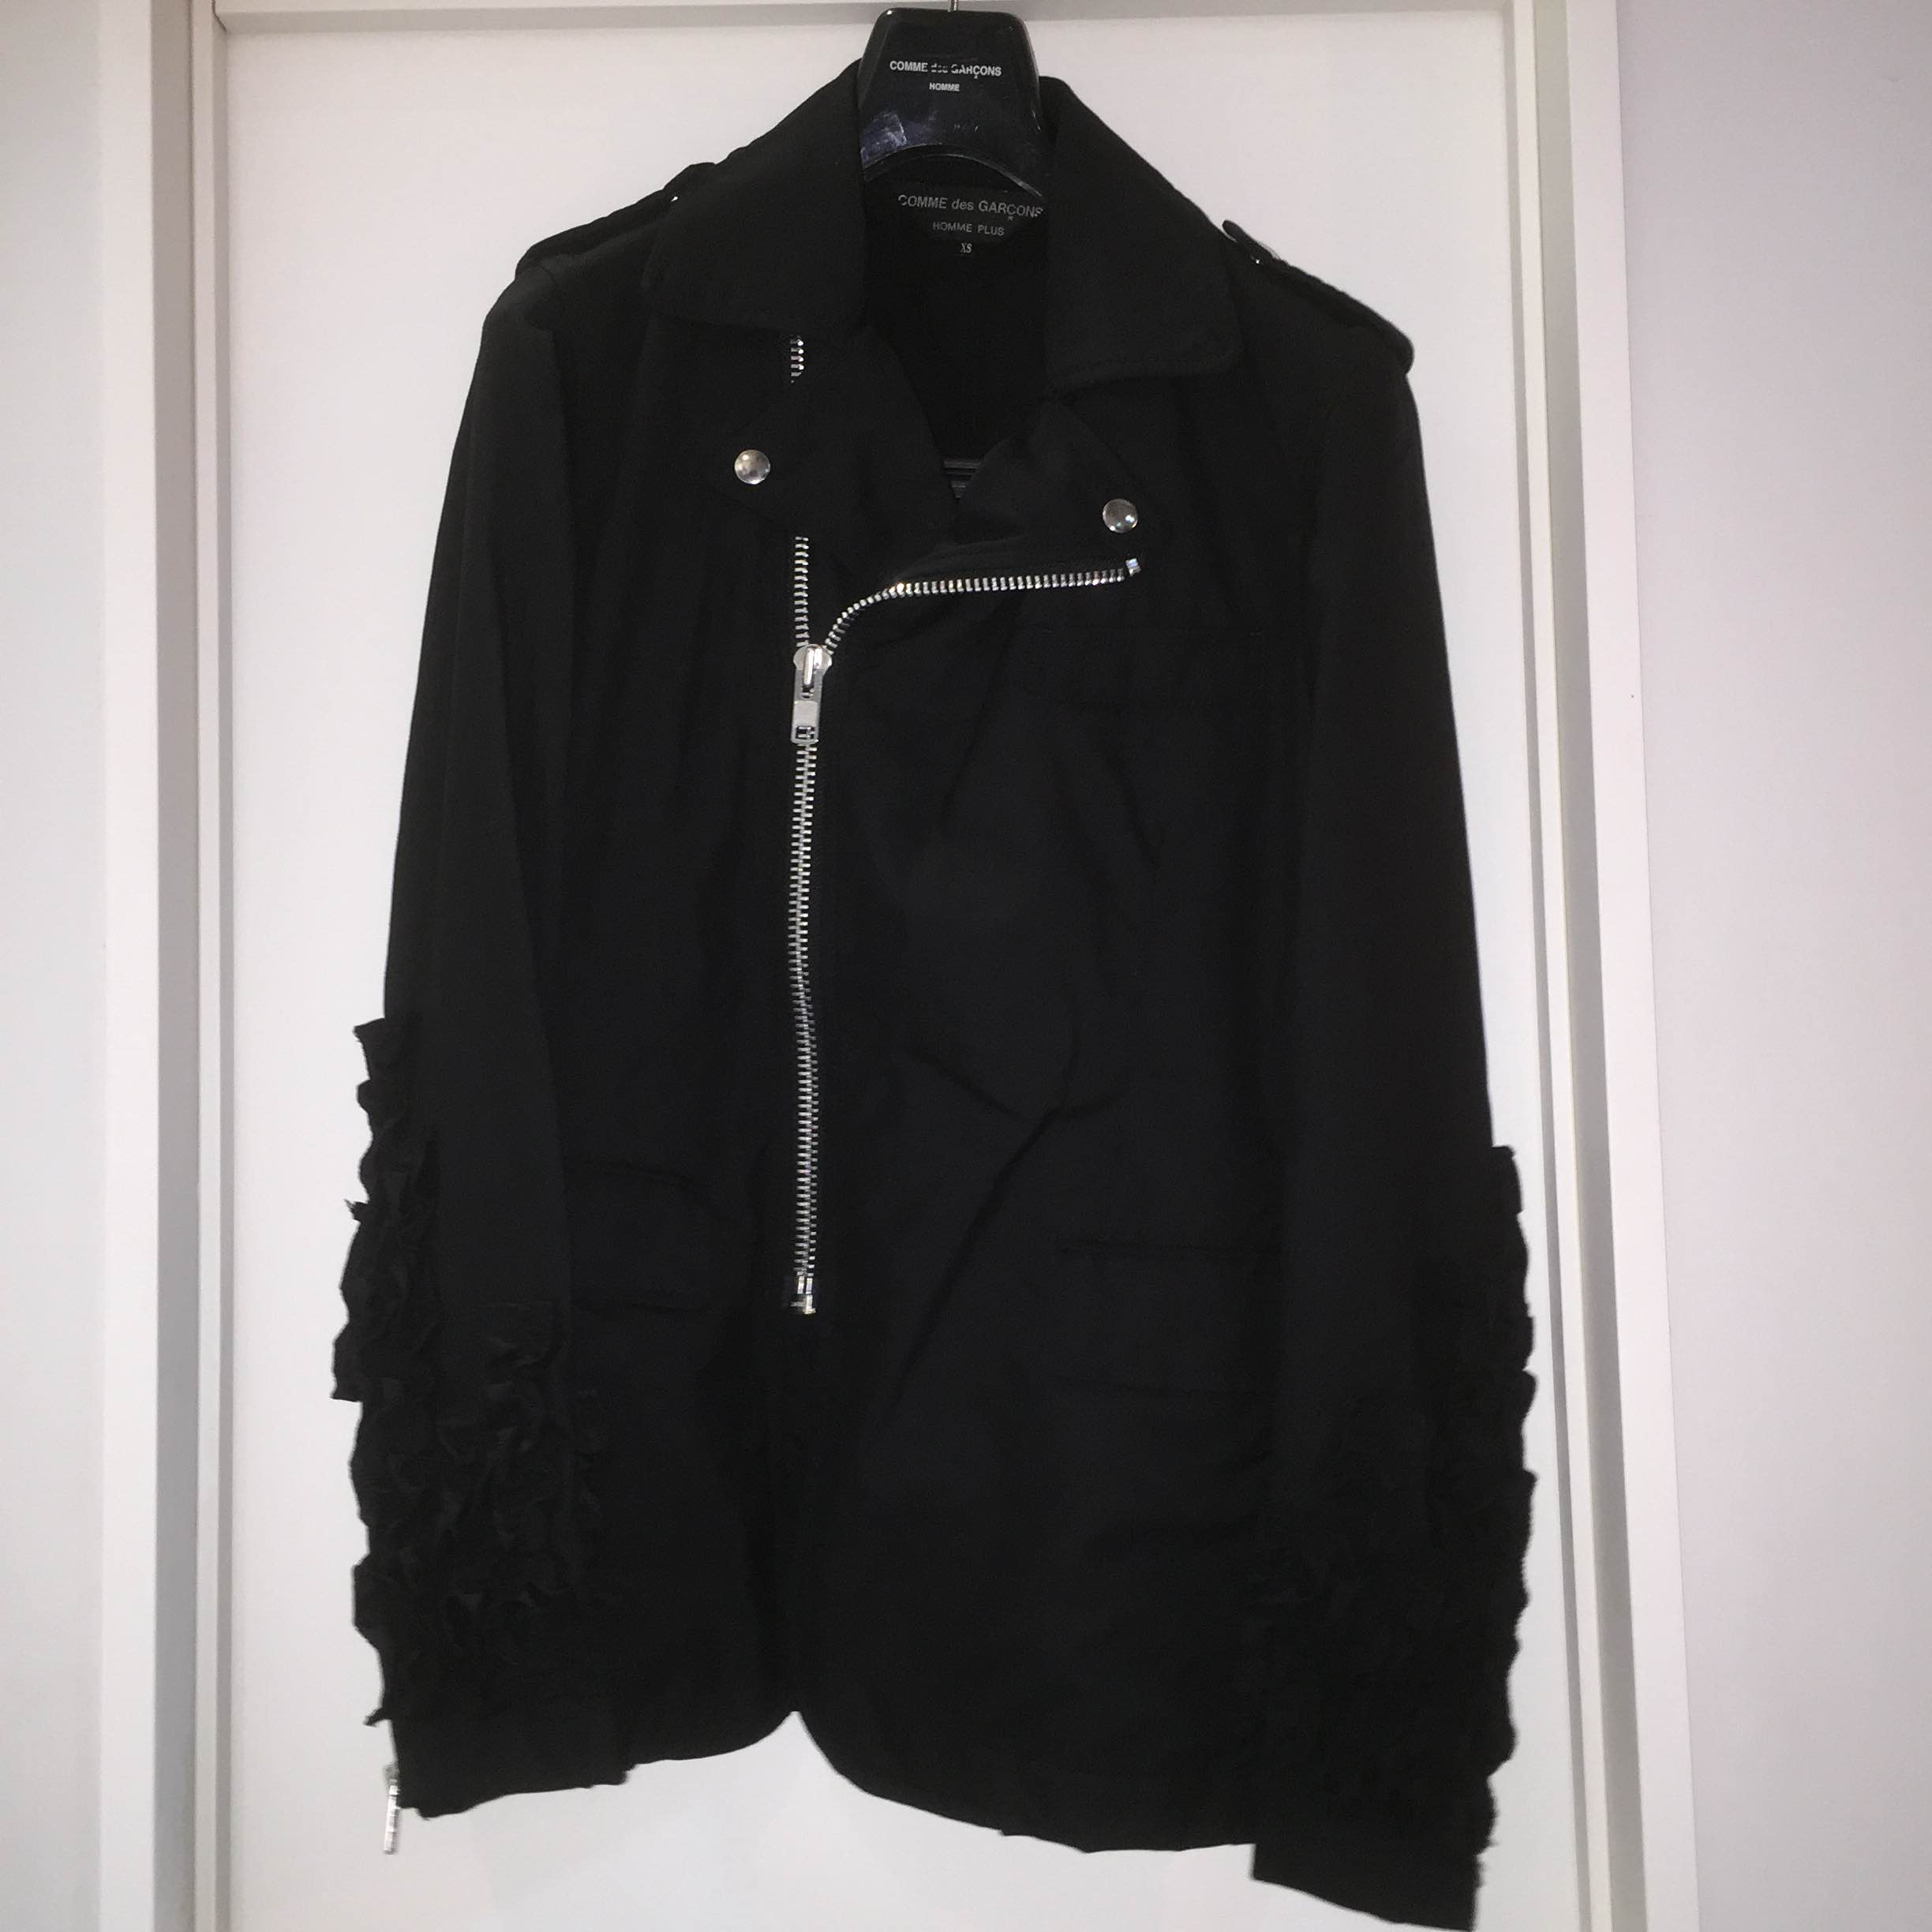 COMME des GARCONS HOMME PLUS 12SS スリーブフリル装飾洗い加工ウールライダースジャケット XS